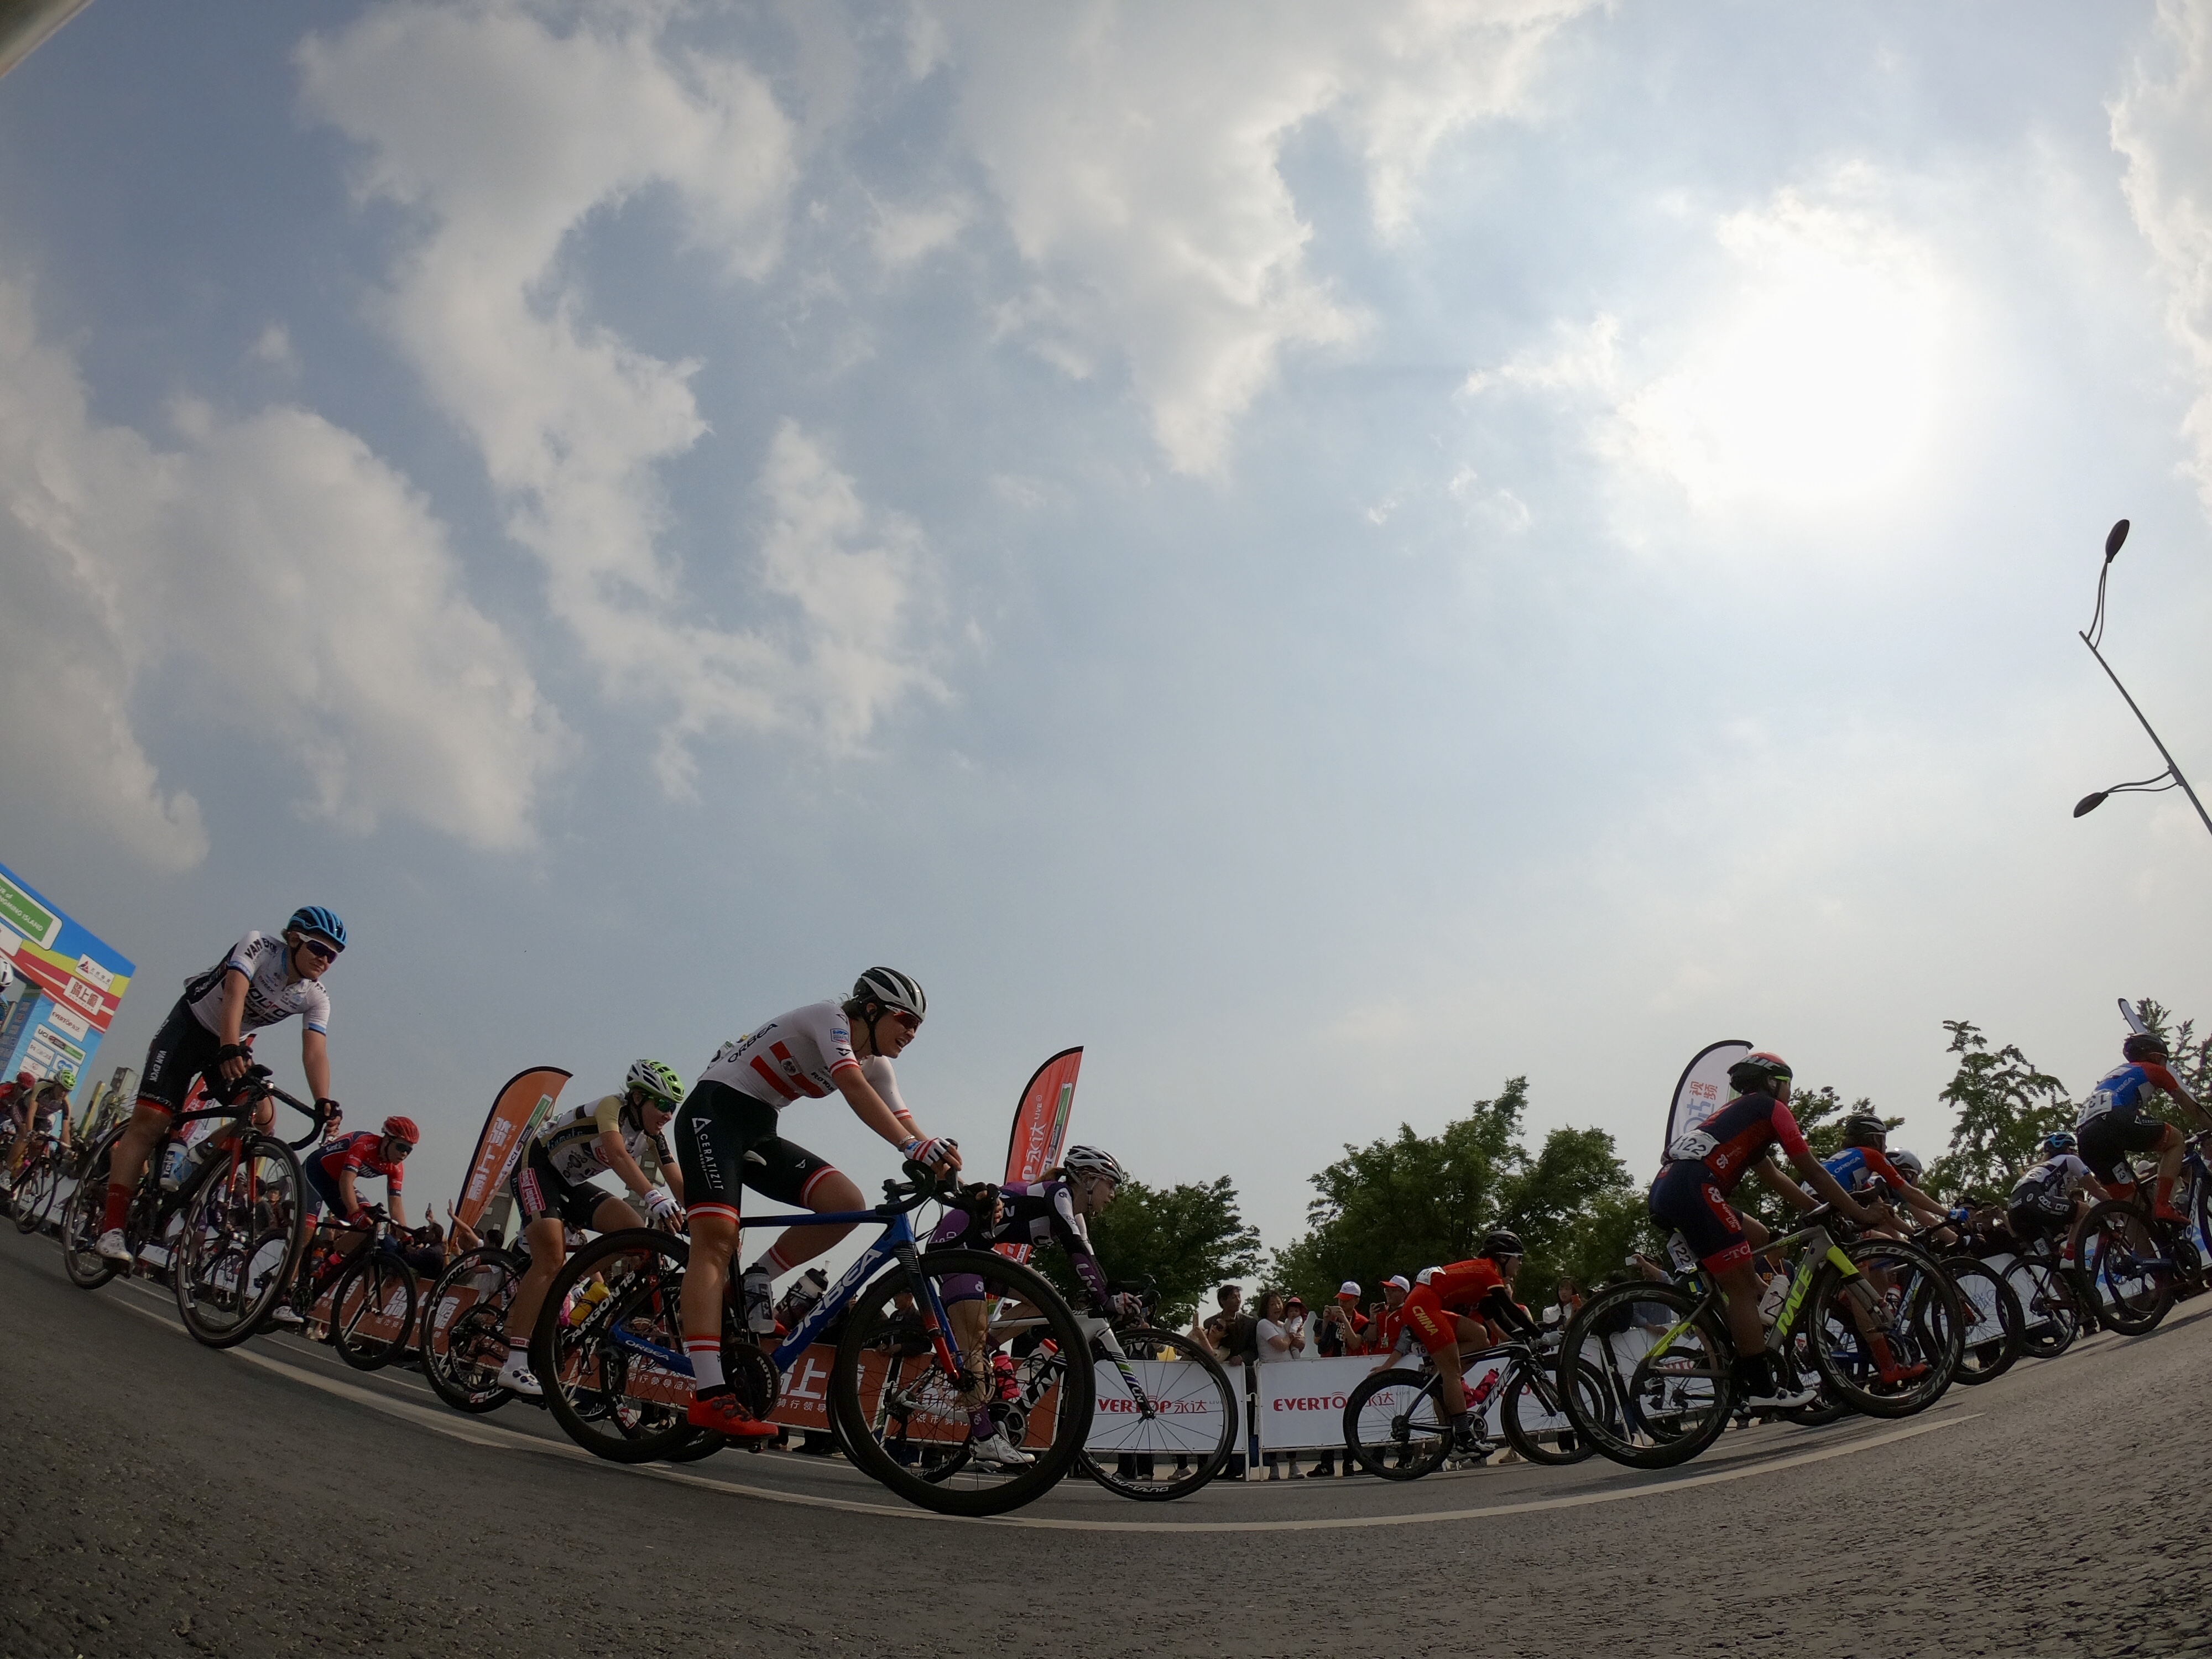 2019 Tour of Chongming Island attracts world's best cyclists